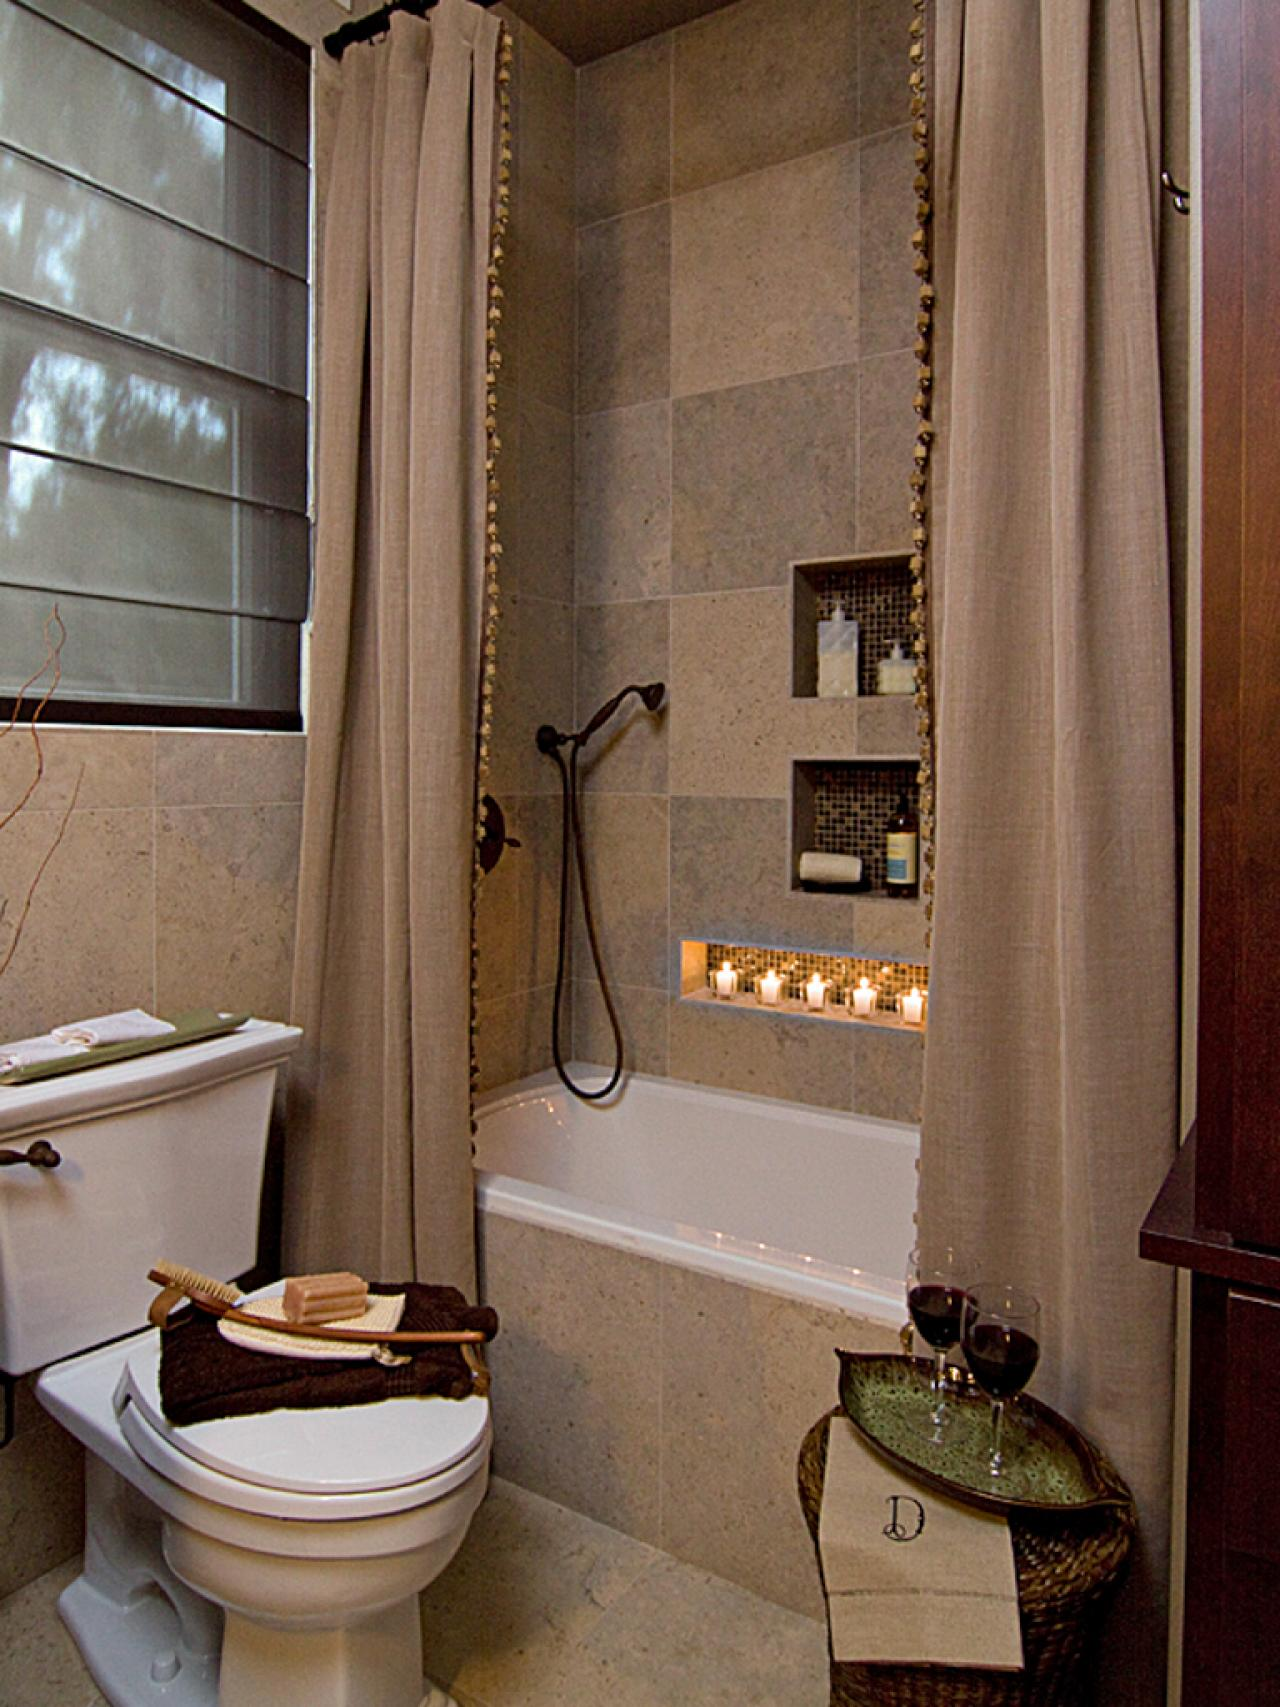 Small bathroom decorating ideas bathroom ideas designs for Small bathroom gallery